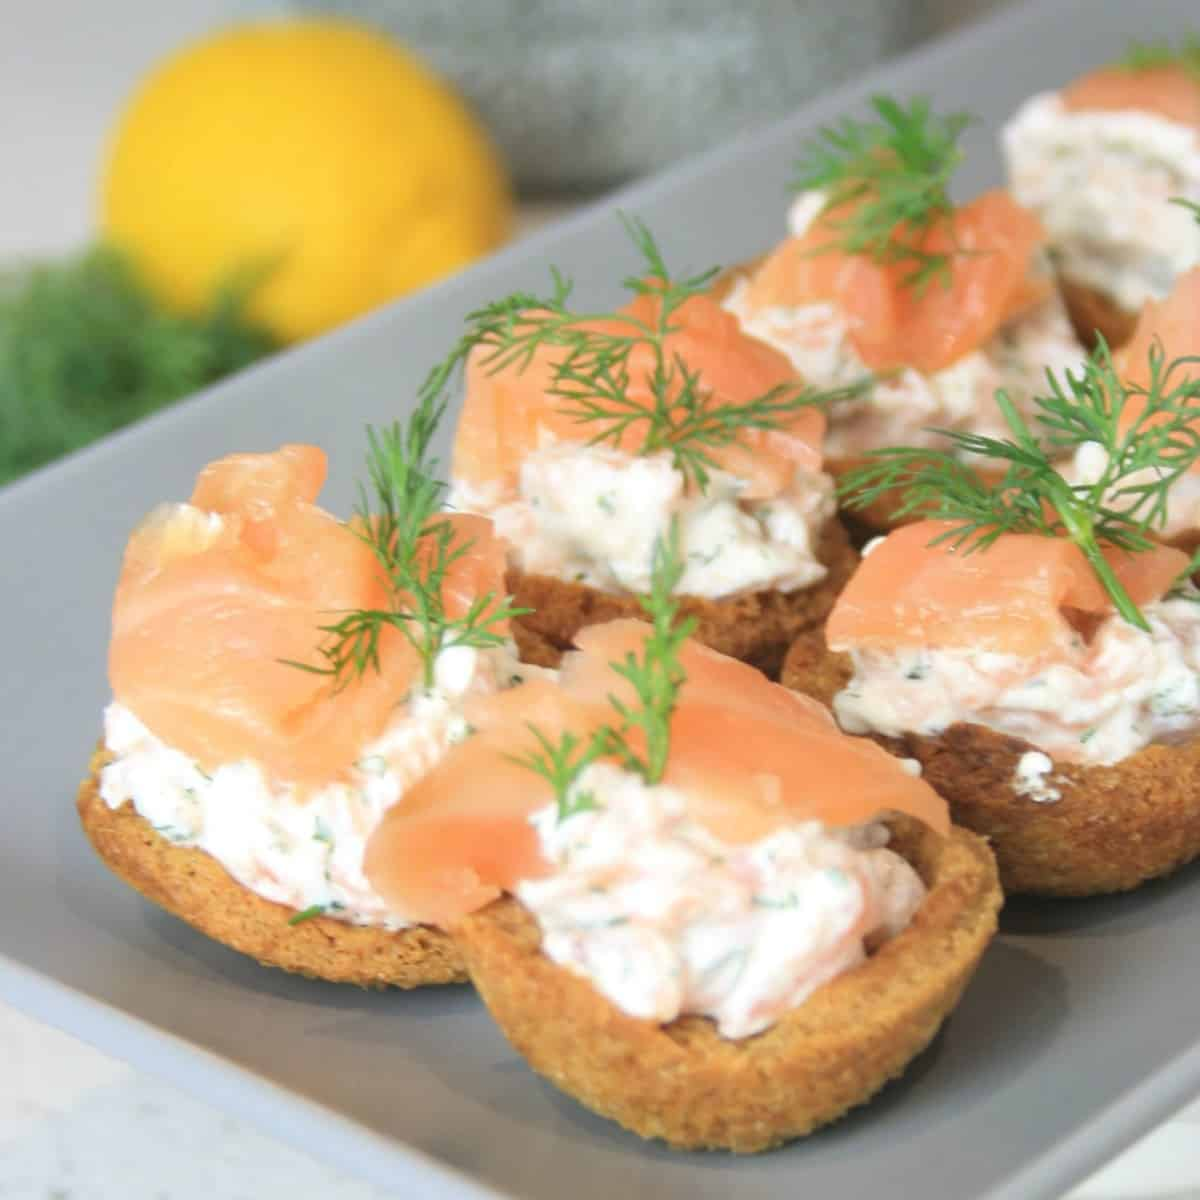 croustades filled with a dill cream and topped with smoked salmon